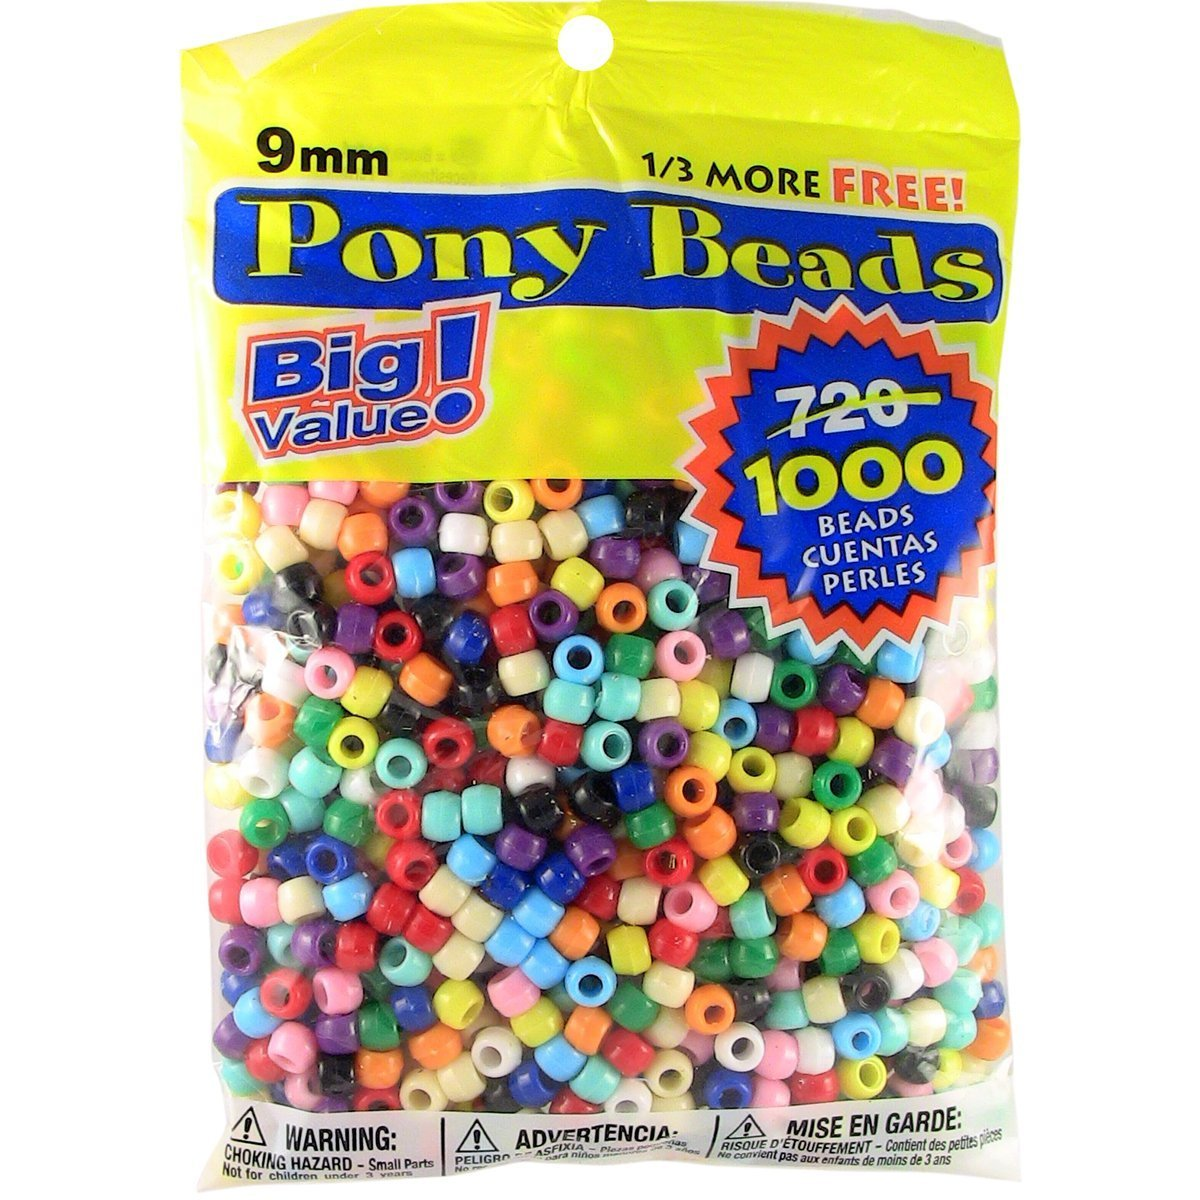 Pony Beads Multi Color 9mm 1000 Pcs in Bag 3 Pack